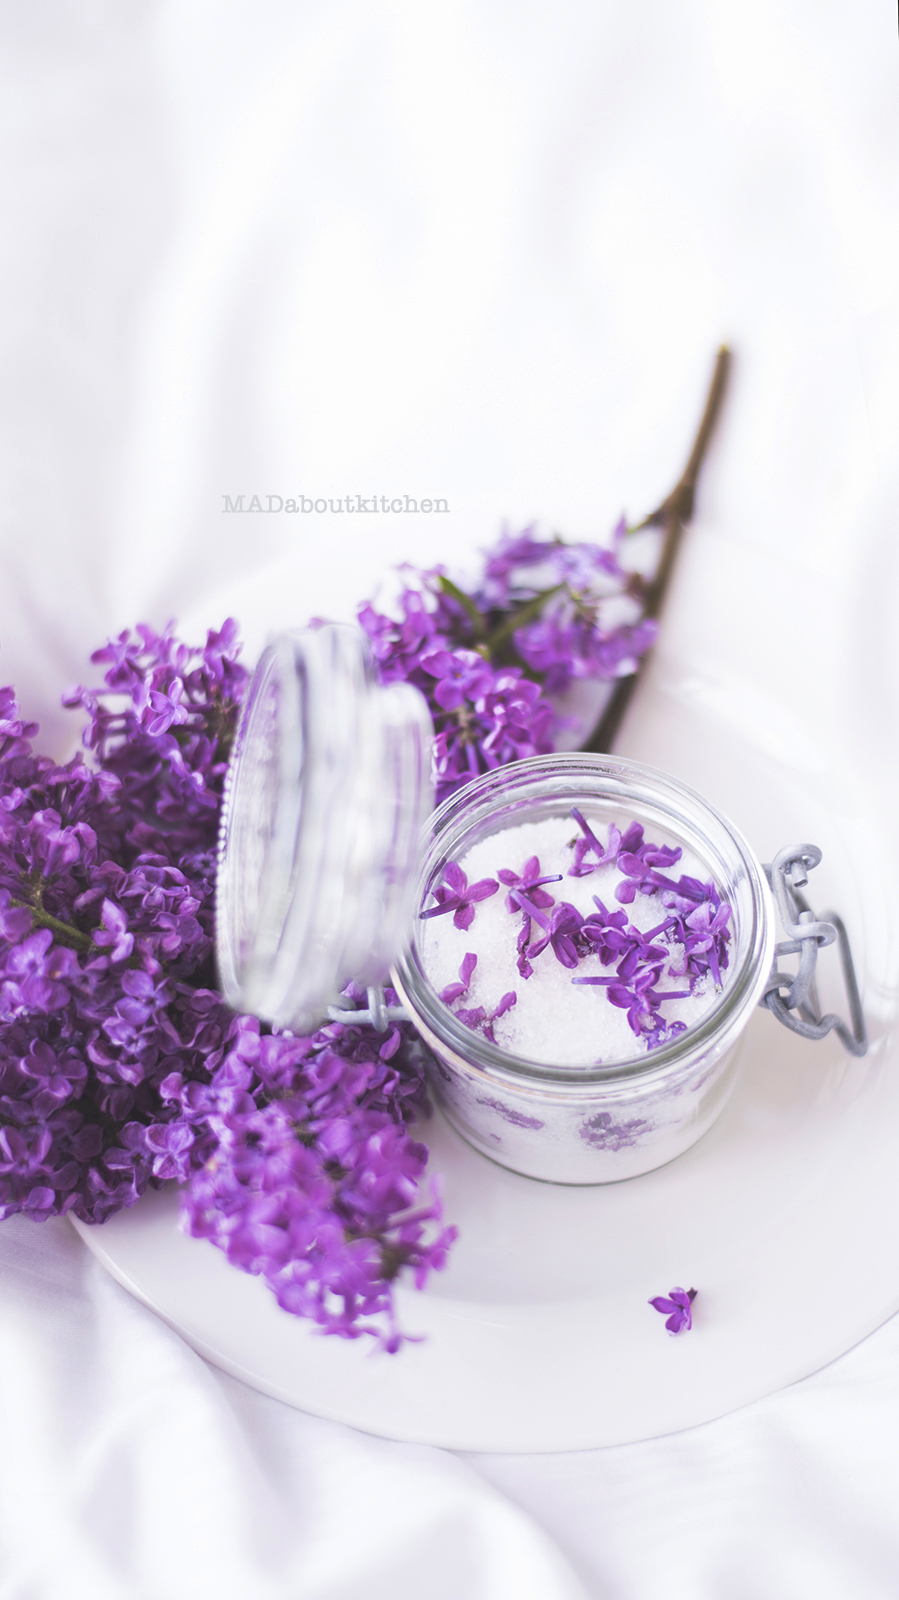 Lilac Sugar, Homemade Infused Sugar perfect for Baking and Tea. Lilac flowers are not only beautiful, but so so fragrant and so perfect for infusing.